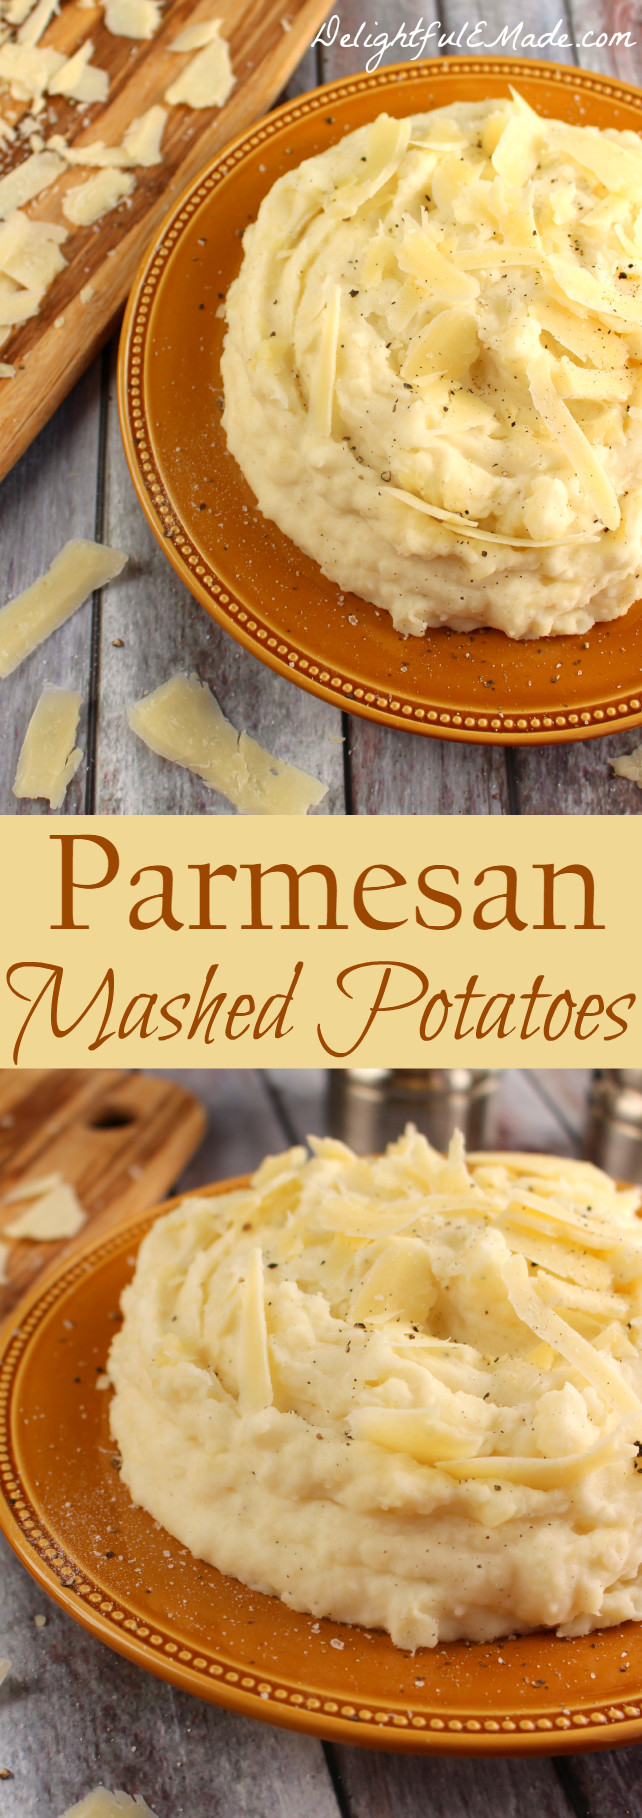 Parmesan Mashed Potatoes  Parmesan Mashed Potatoes Delightful E Made